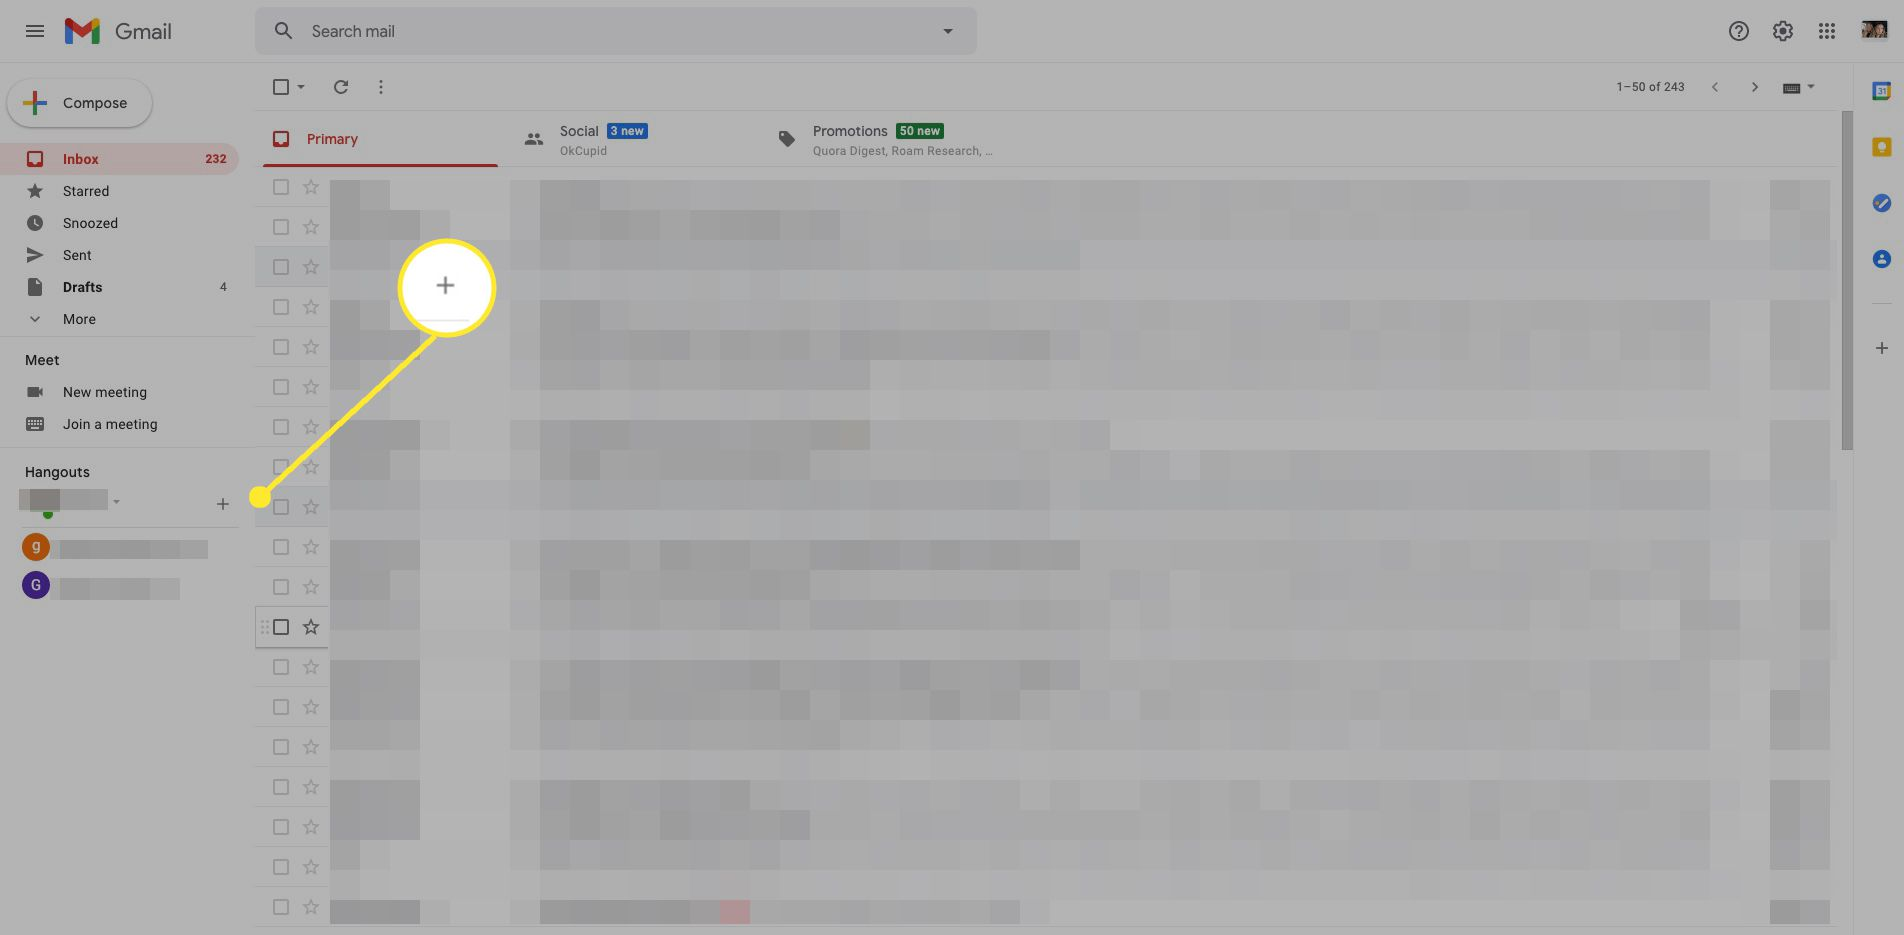 Gmail Hangouts with plus sign highlighted